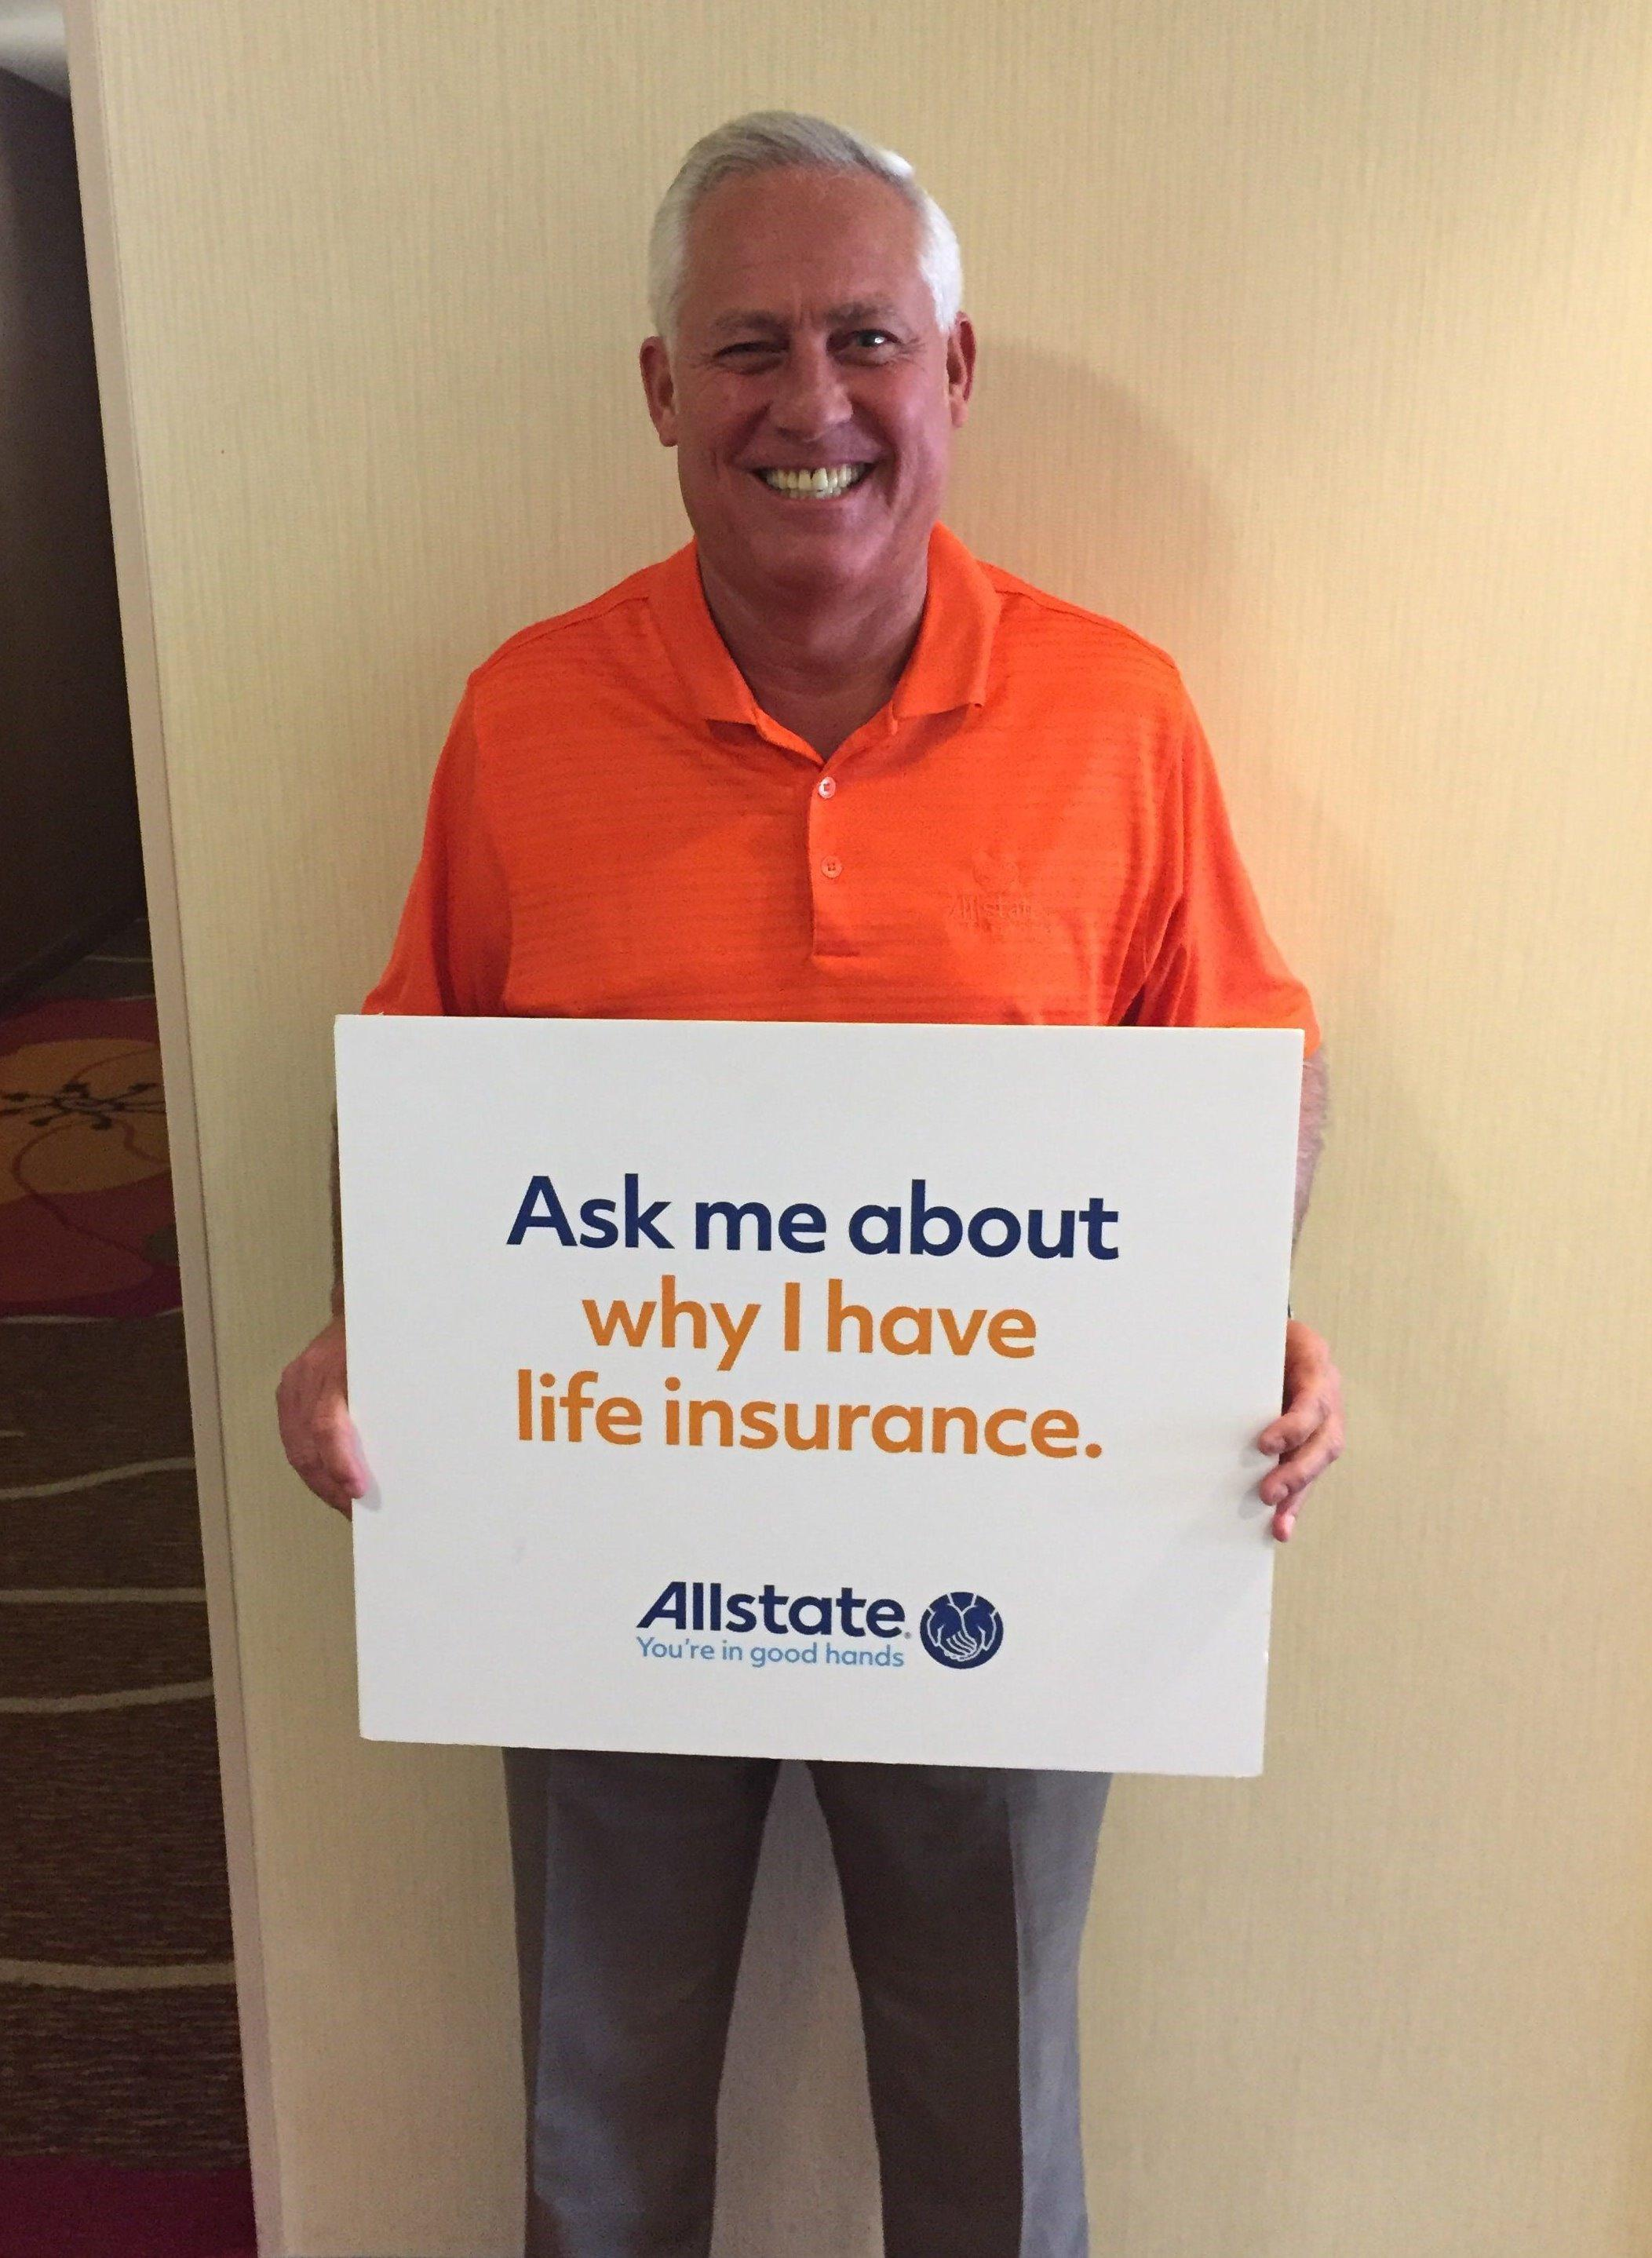 Jim Felts: Allstate Insurance